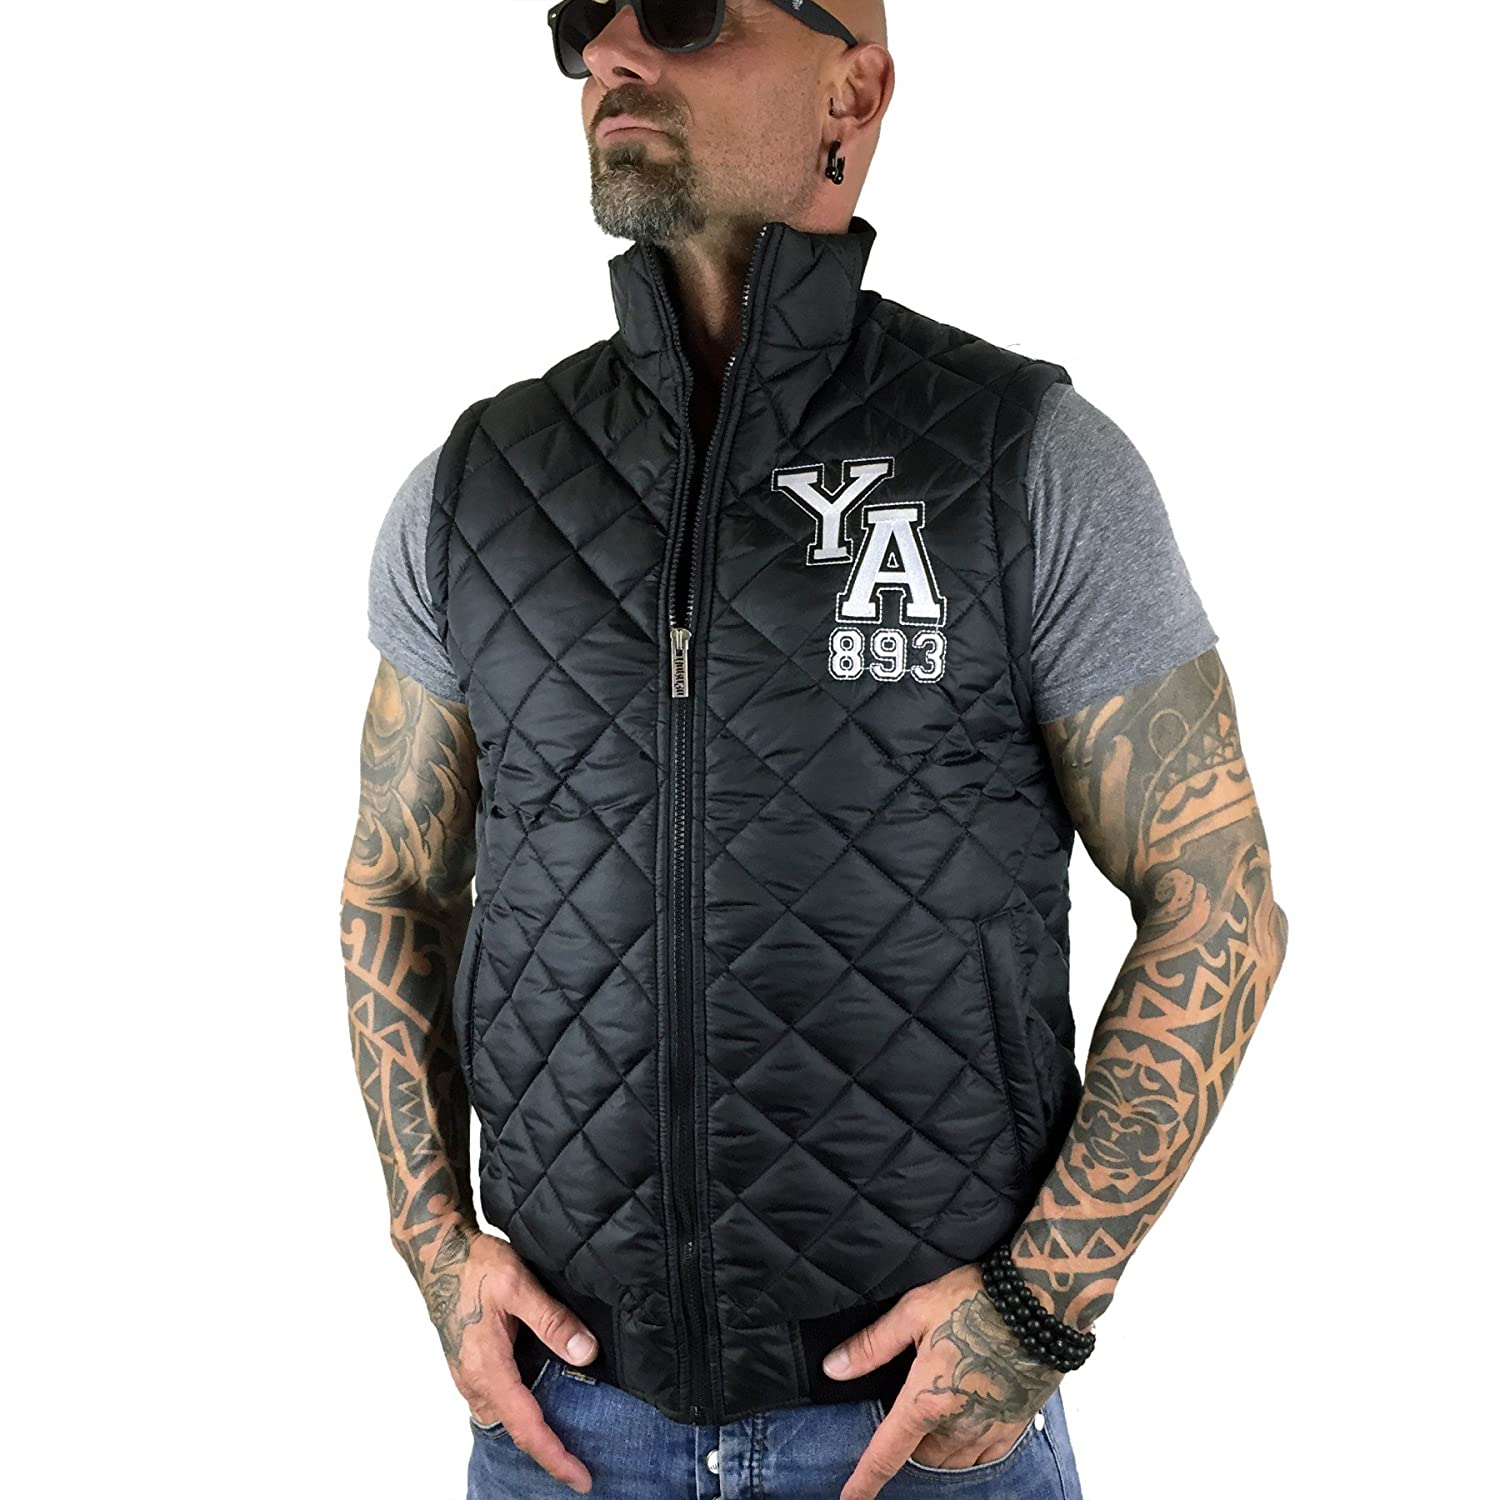 Yakuza Men Jackets / Vest Skeleton Quilted